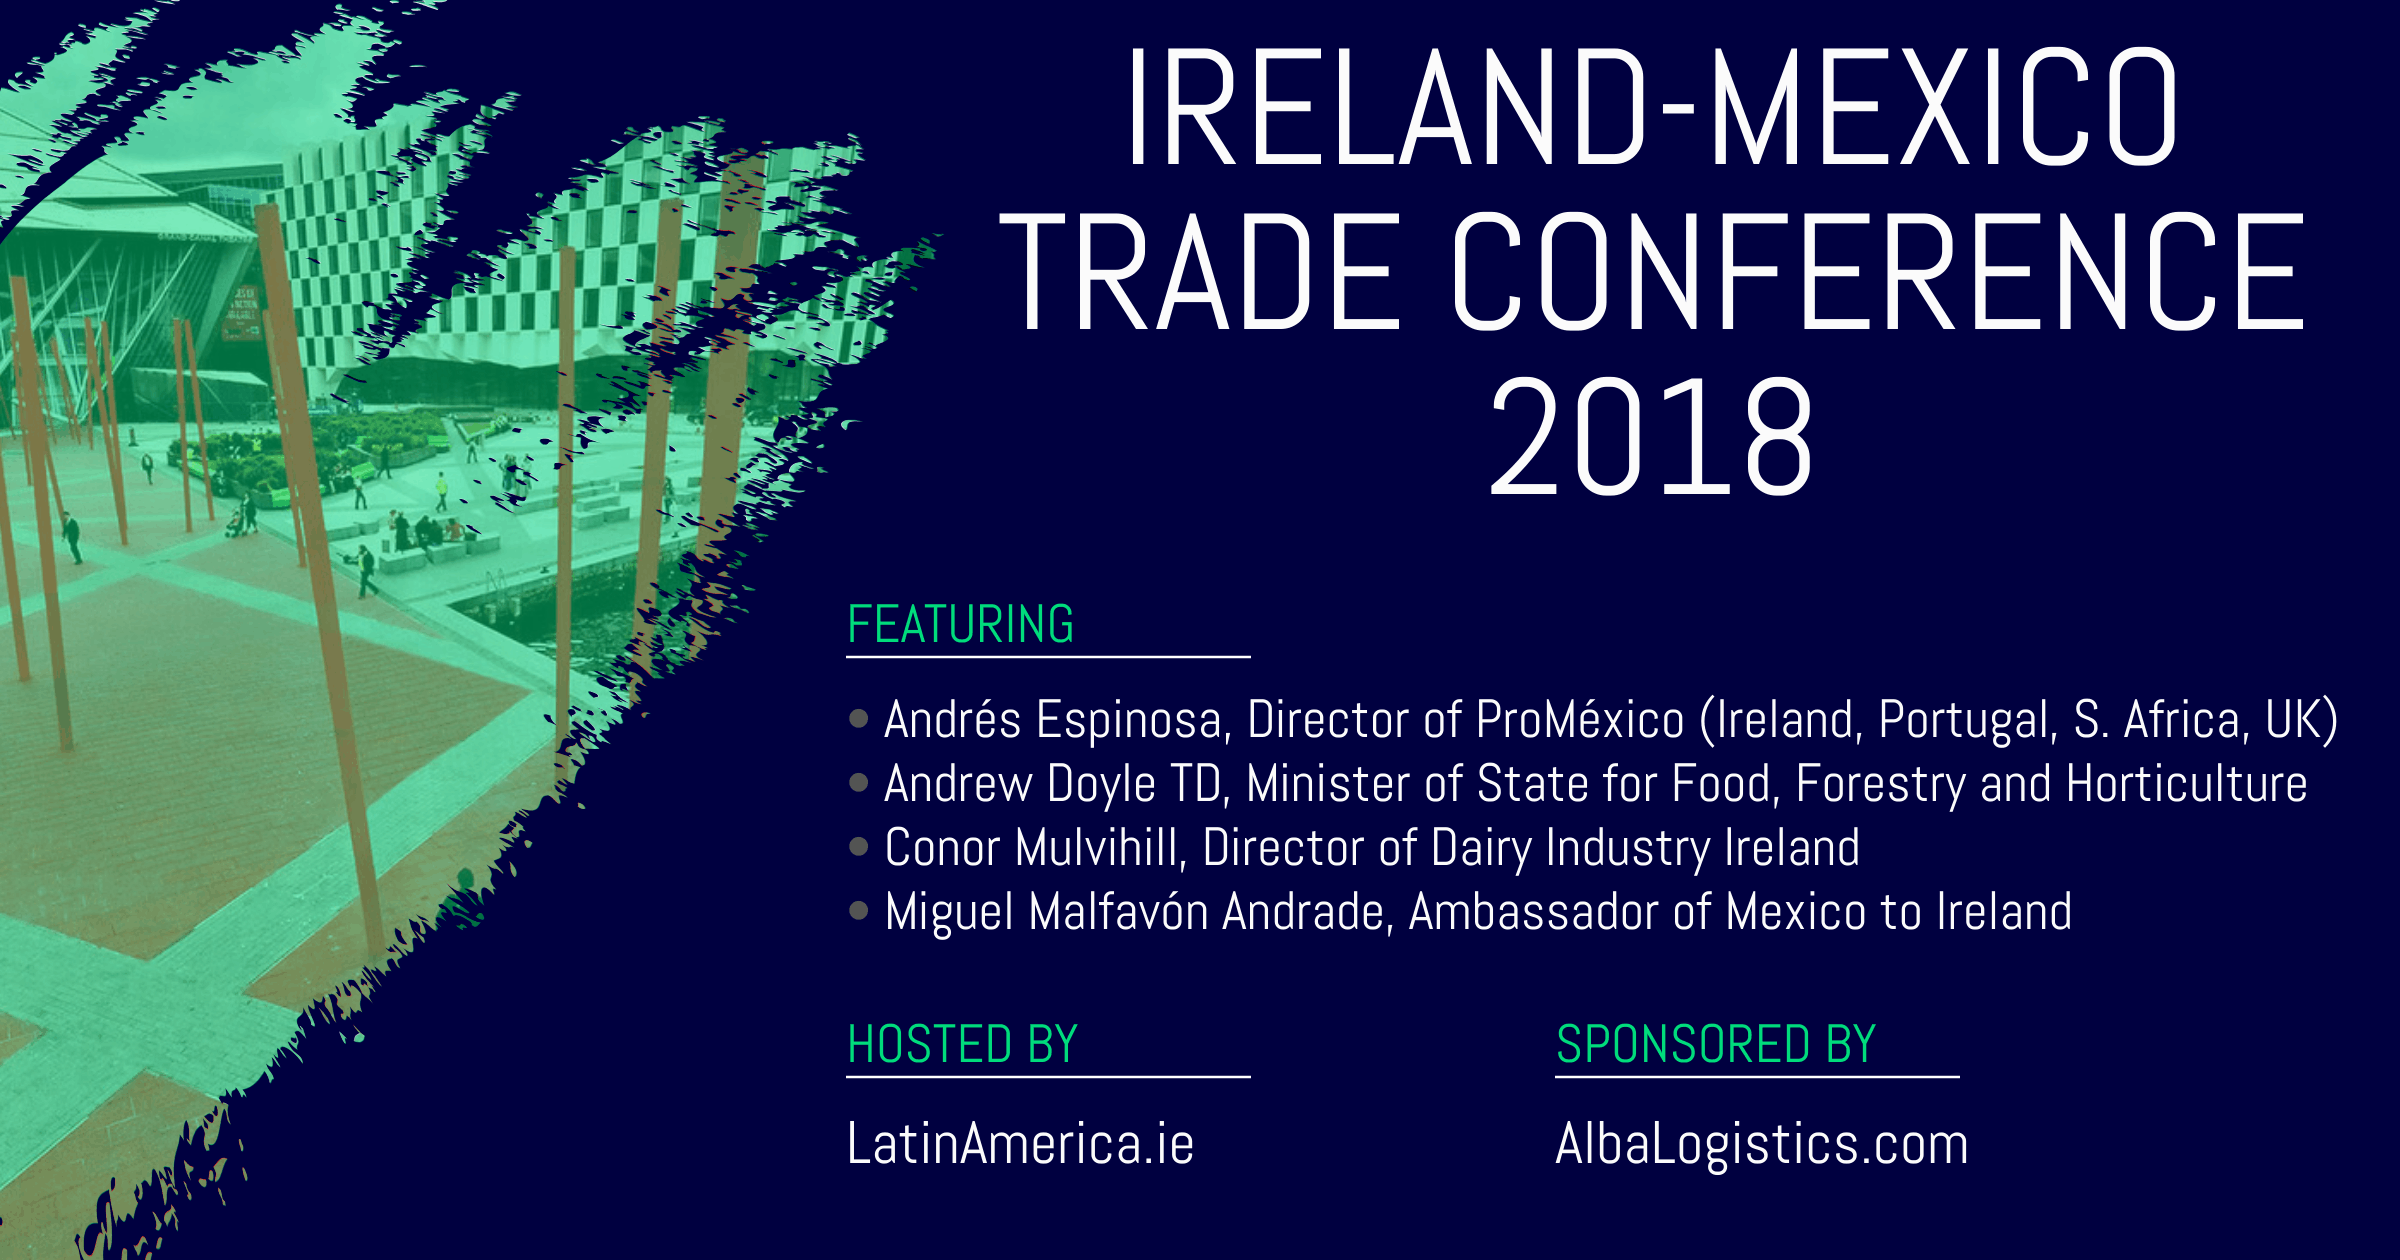 Ireland Mexico Trade Conference | Promoting Irish Trade with Mexico - Conferencia de Comercio Irlanda Mexico 2018 | Los negocios Irlandeses-Mexicanos